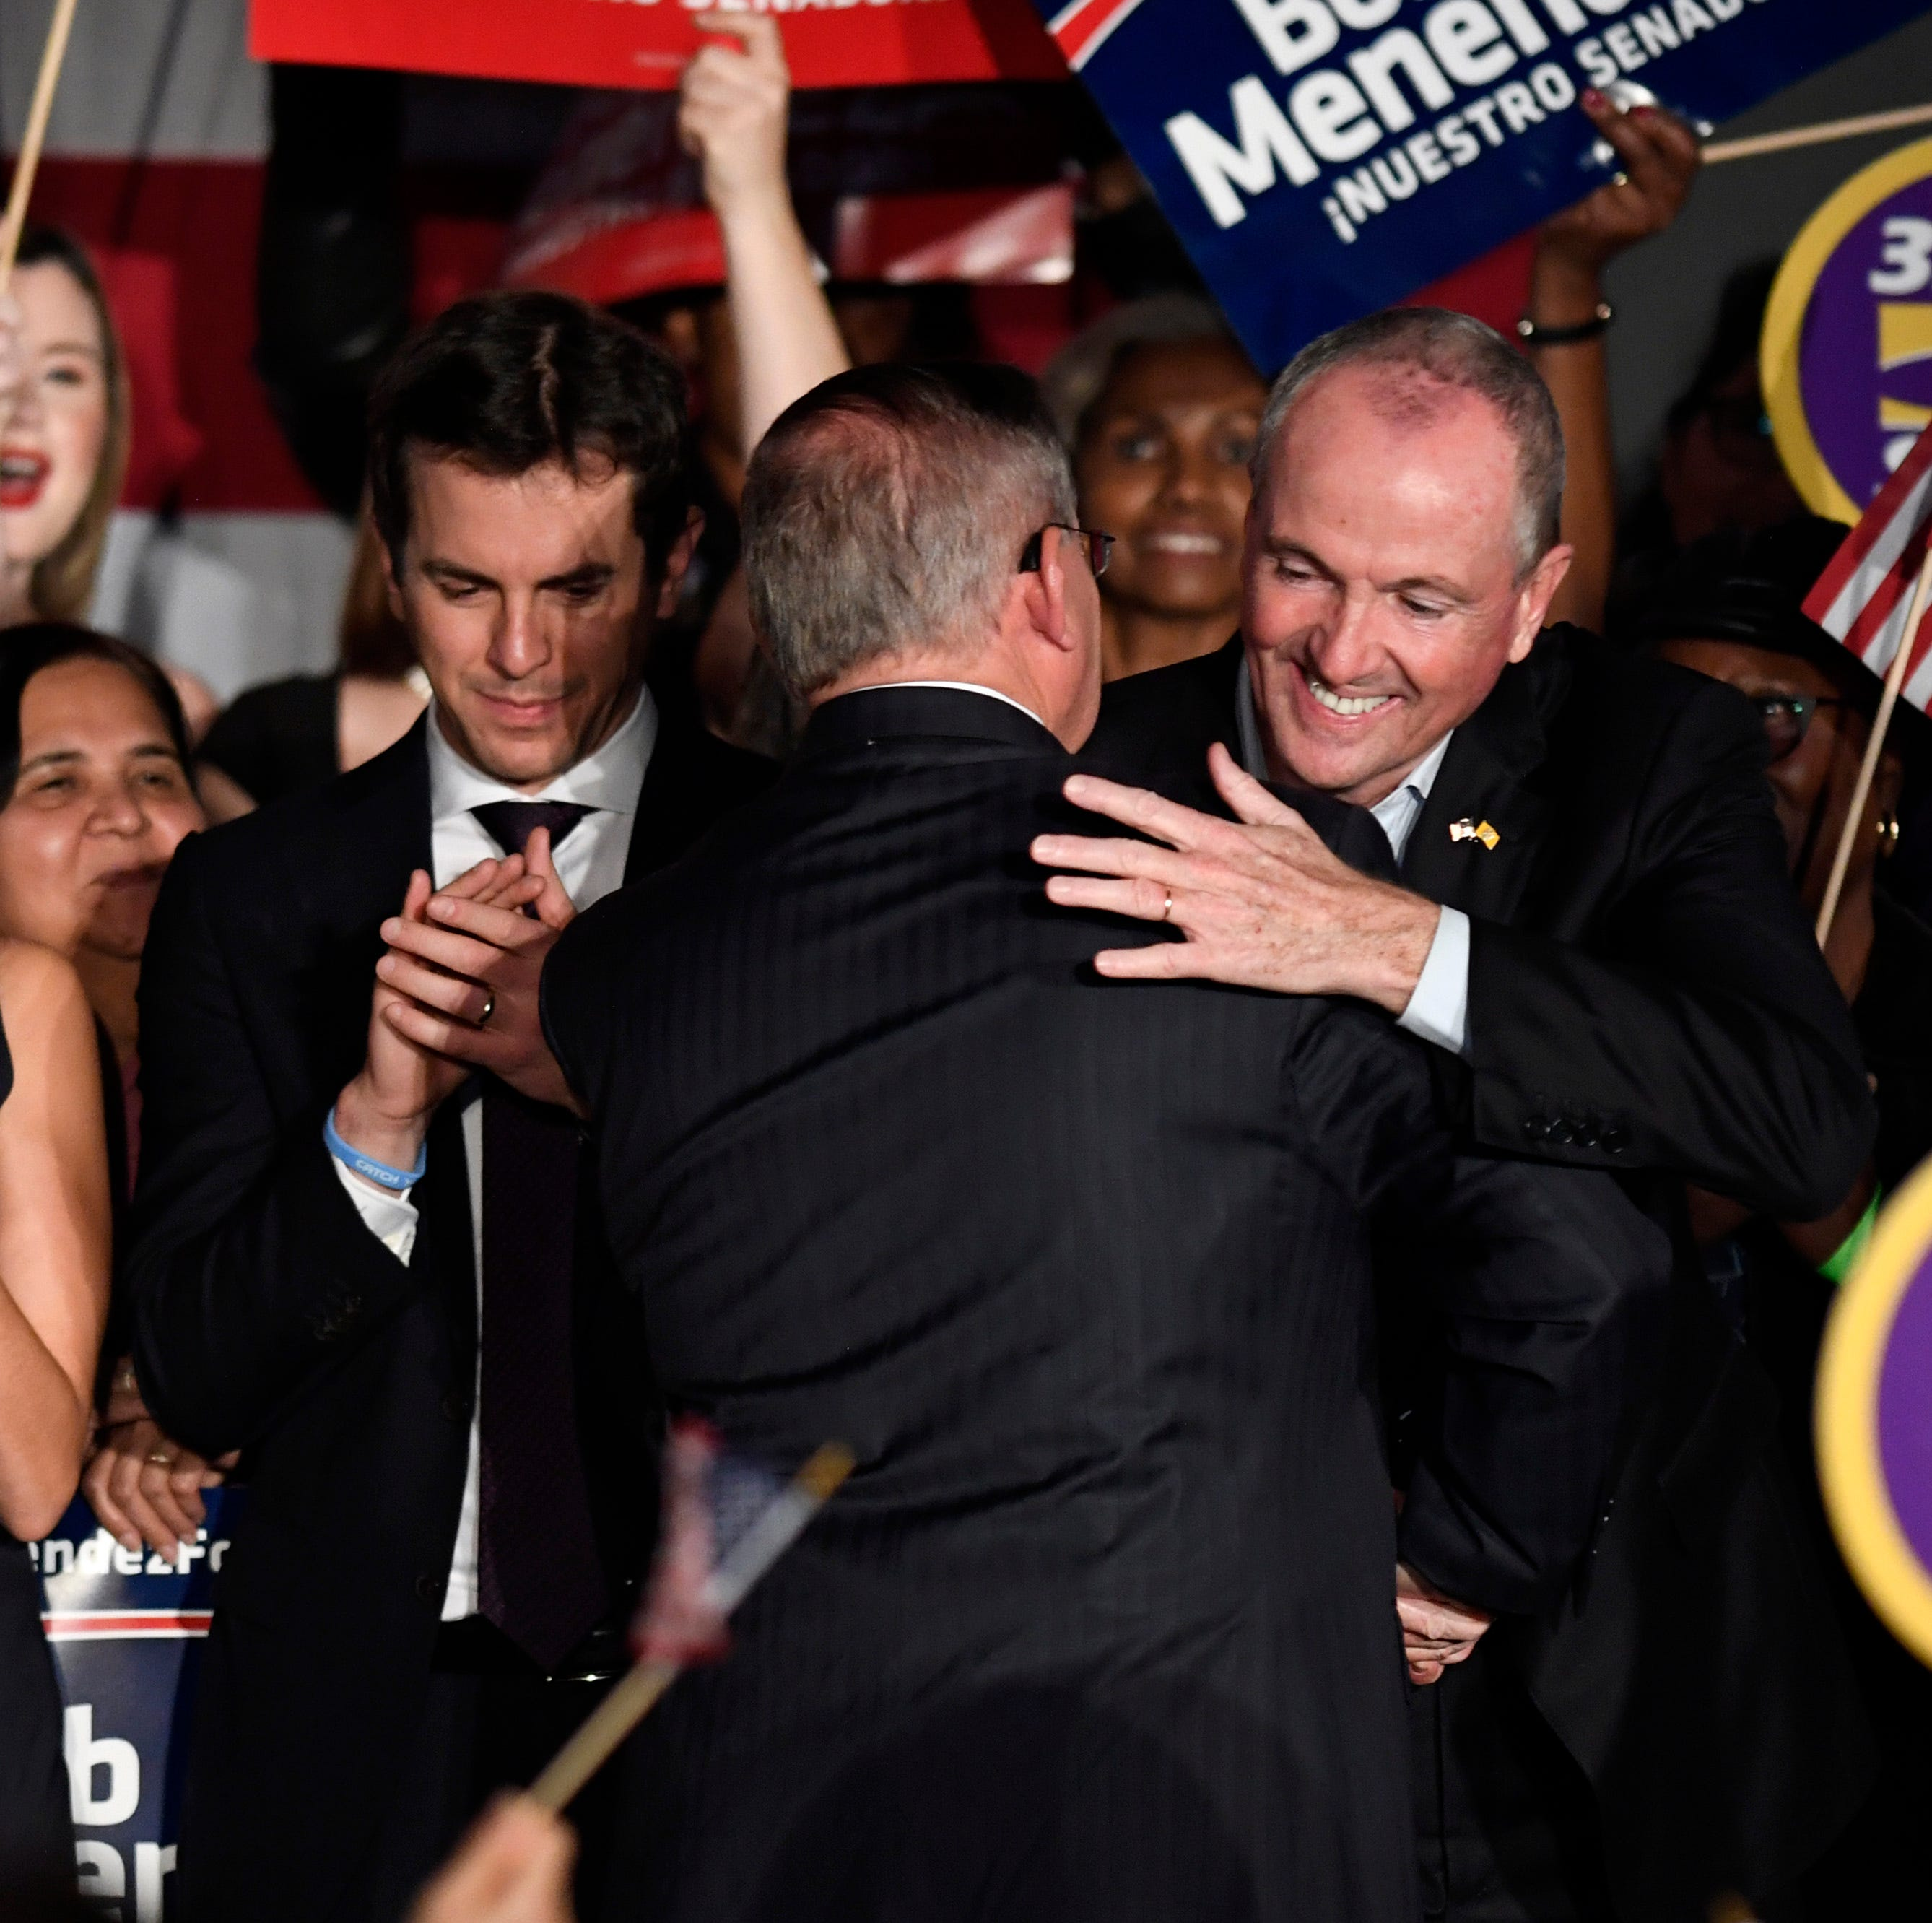 Bob Menendez won, NJ Democrats took the House. Here's what the party needs to do next